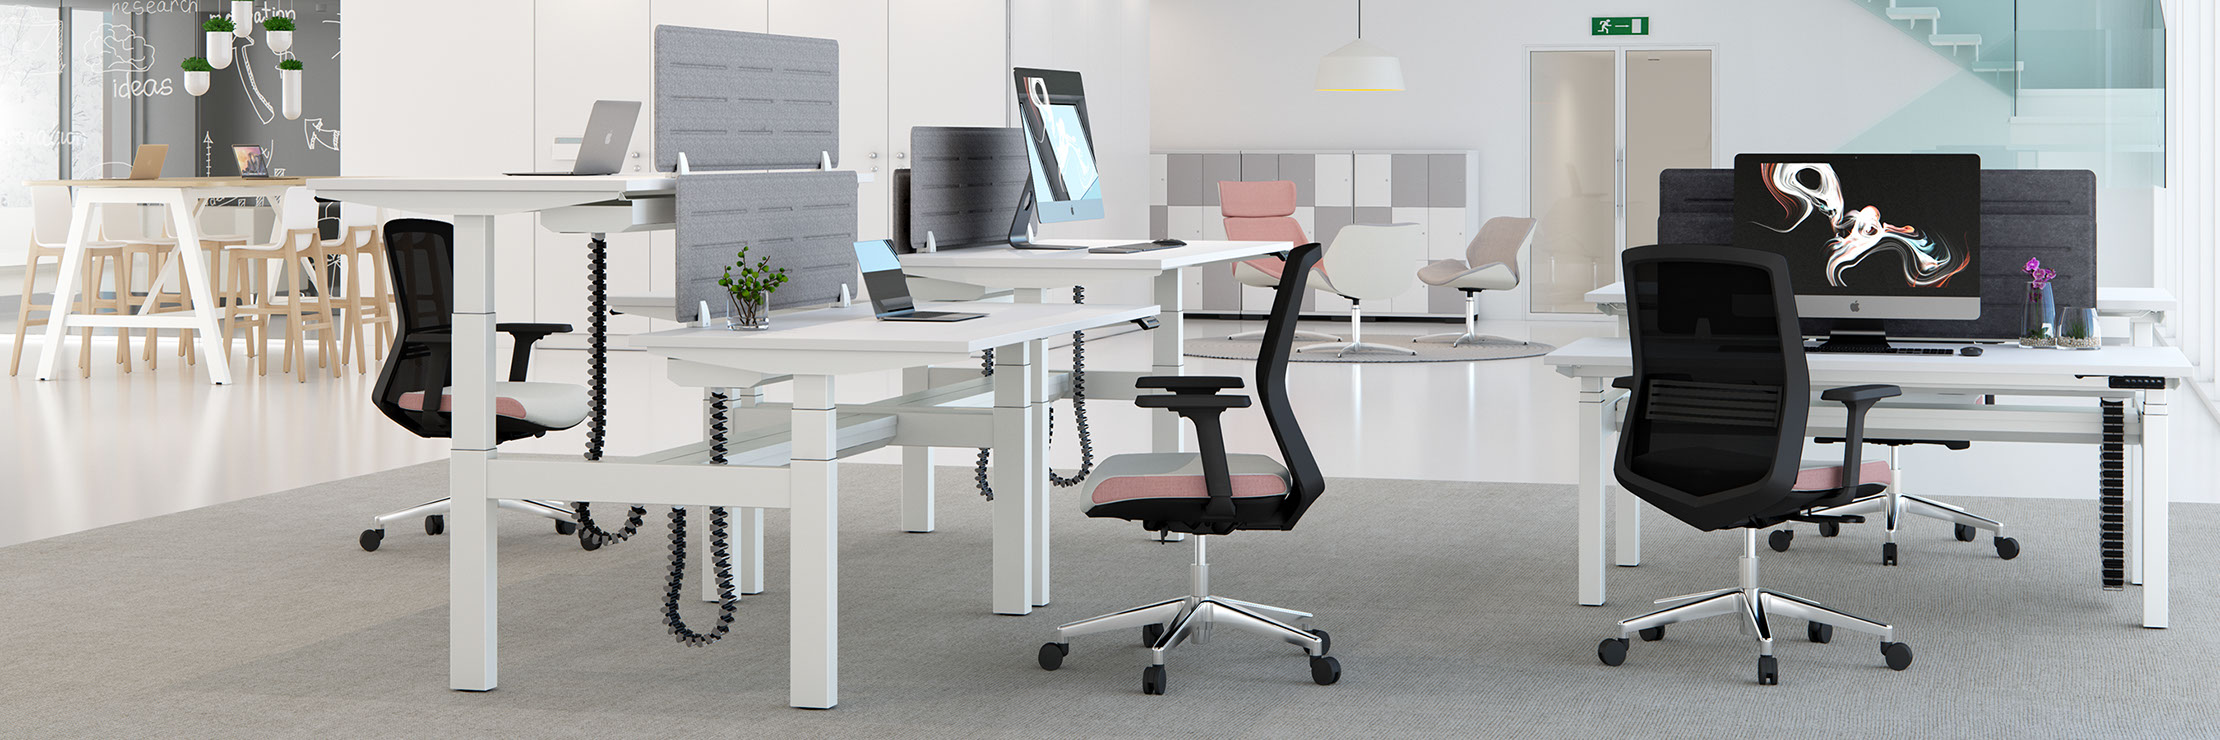 Designer Office Furniture Best Office Furniture For Sale London Whiteleys Office Furniture